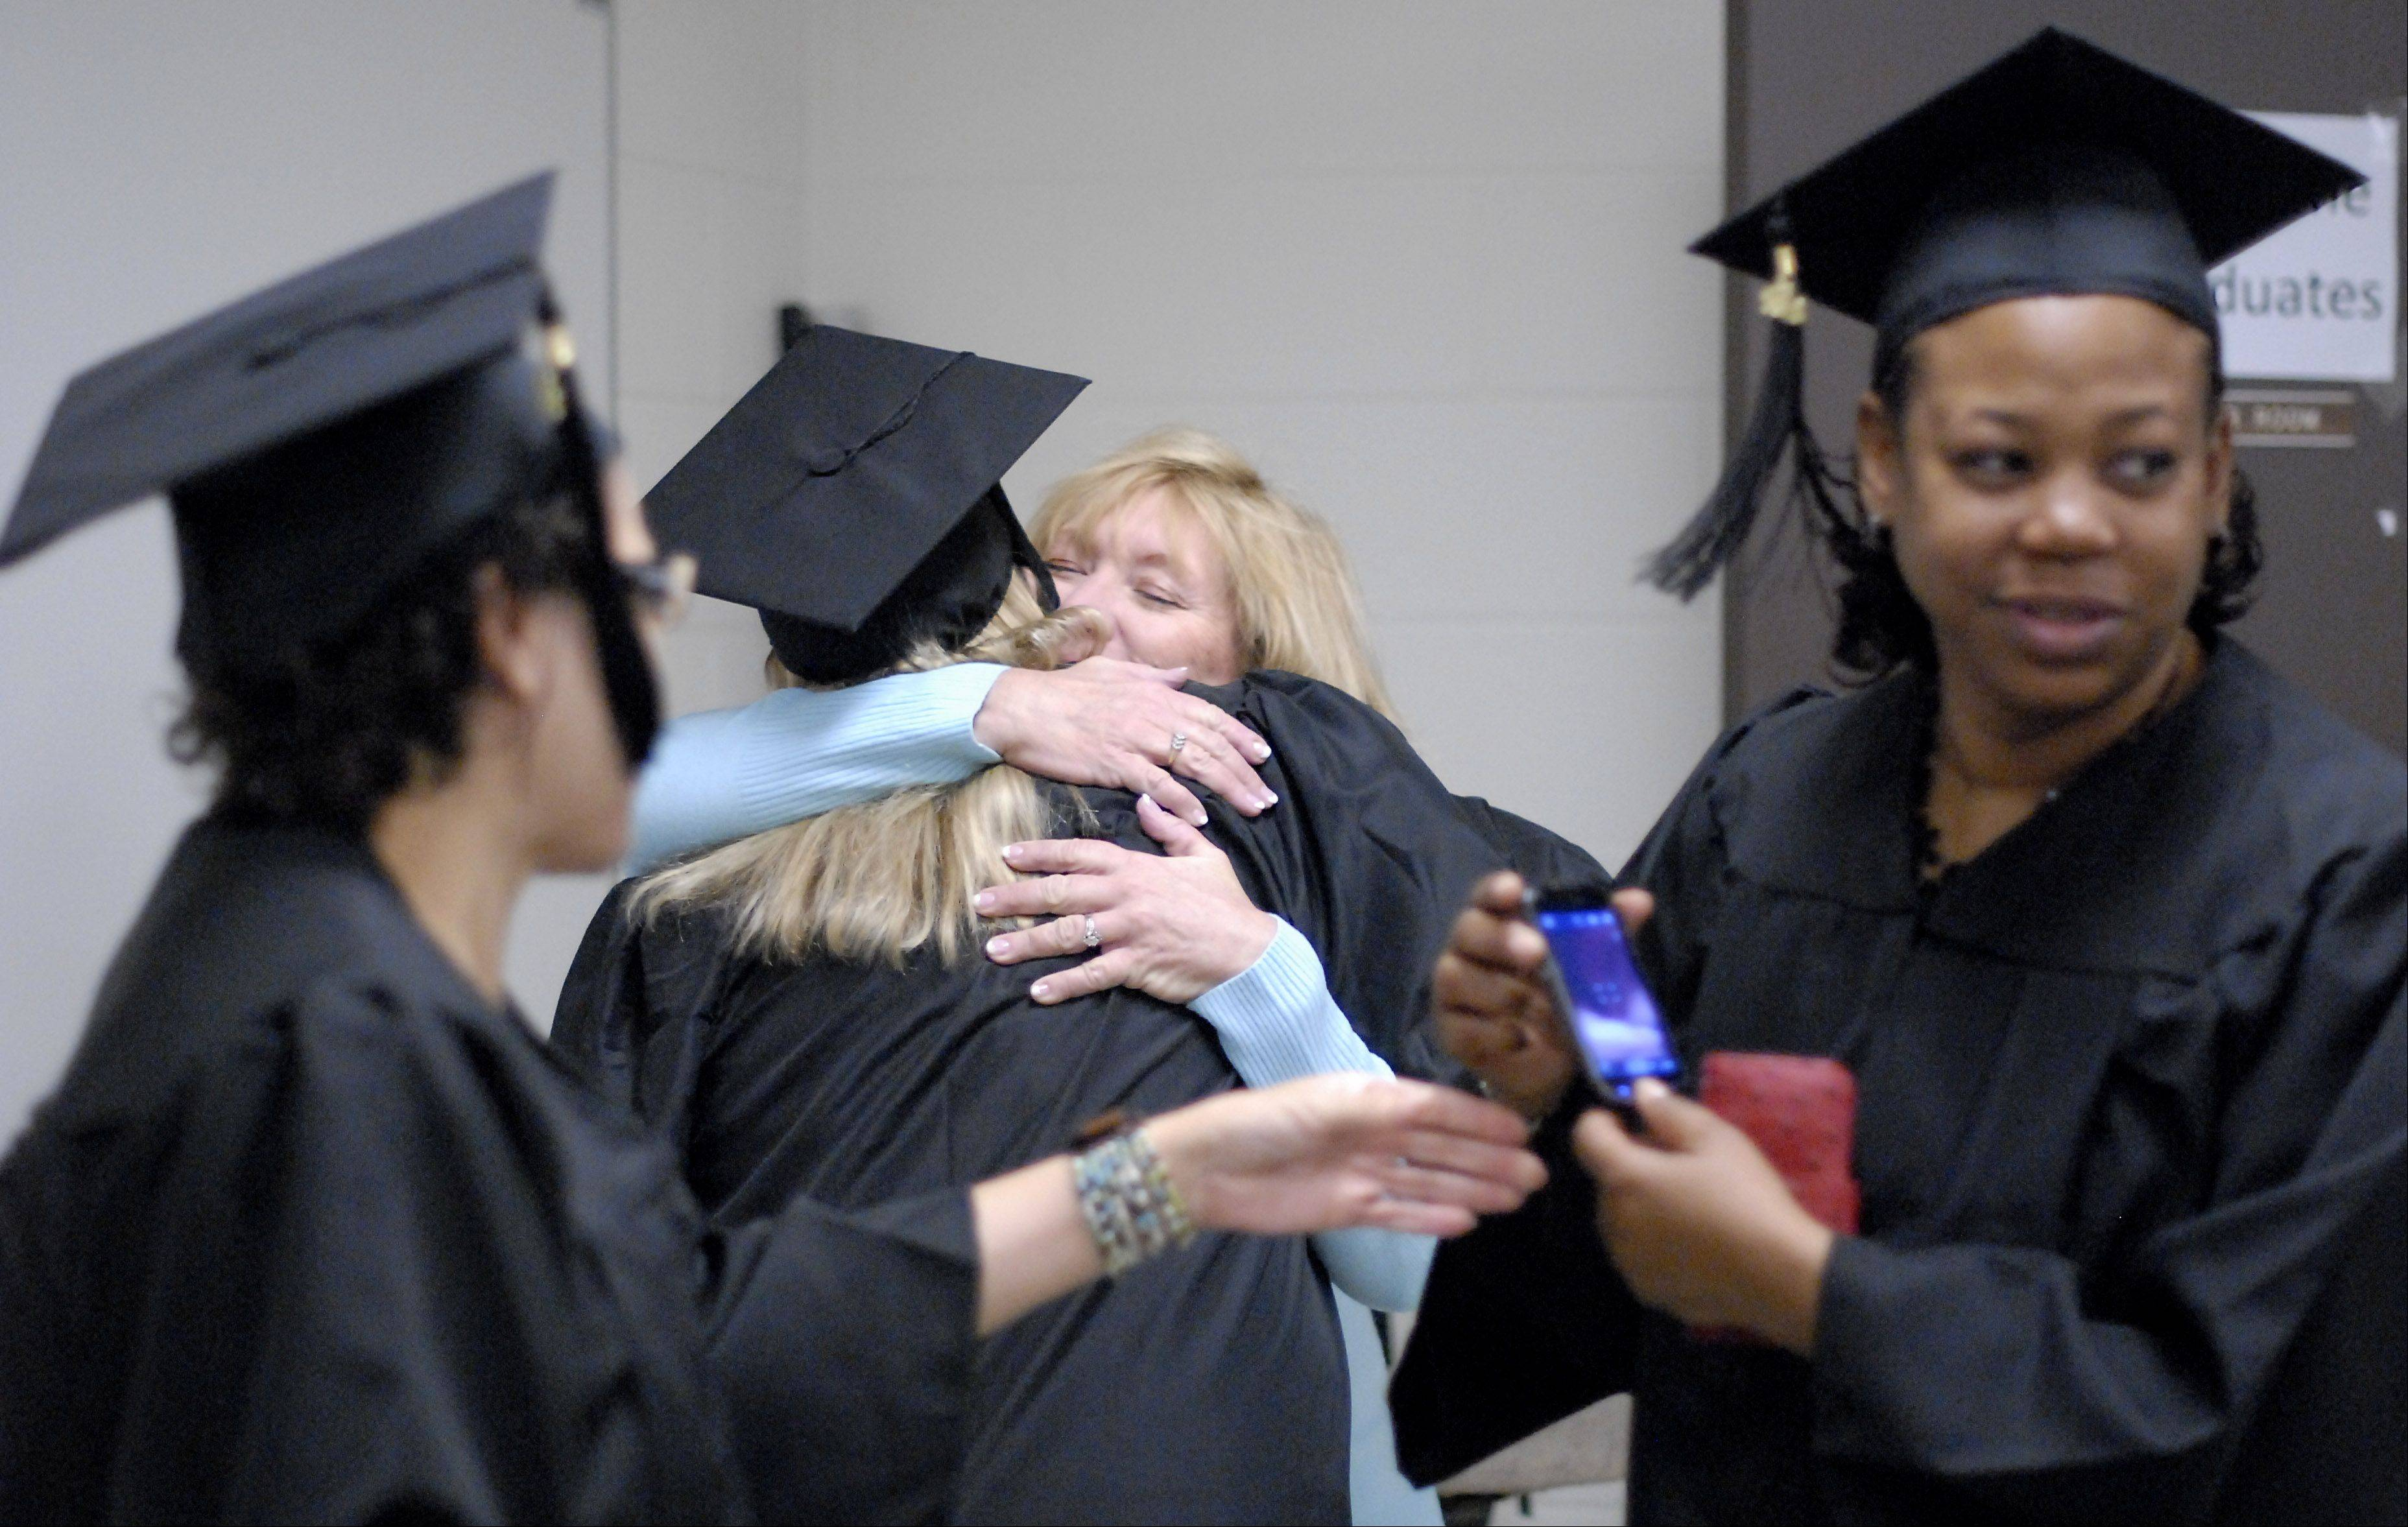 As Colleen Williamson of Hanover Park passes her phone to Bridgette Sowers of Elgin for photos, Michelle Lawler of Gilberts gets a hug from her stepmother, Suzy Macino of Geneva, before the morning commencement ceremony at the Judson University chapel in Elgin Saturday. The three graduates earned a bachelor's degrees in human resource management.